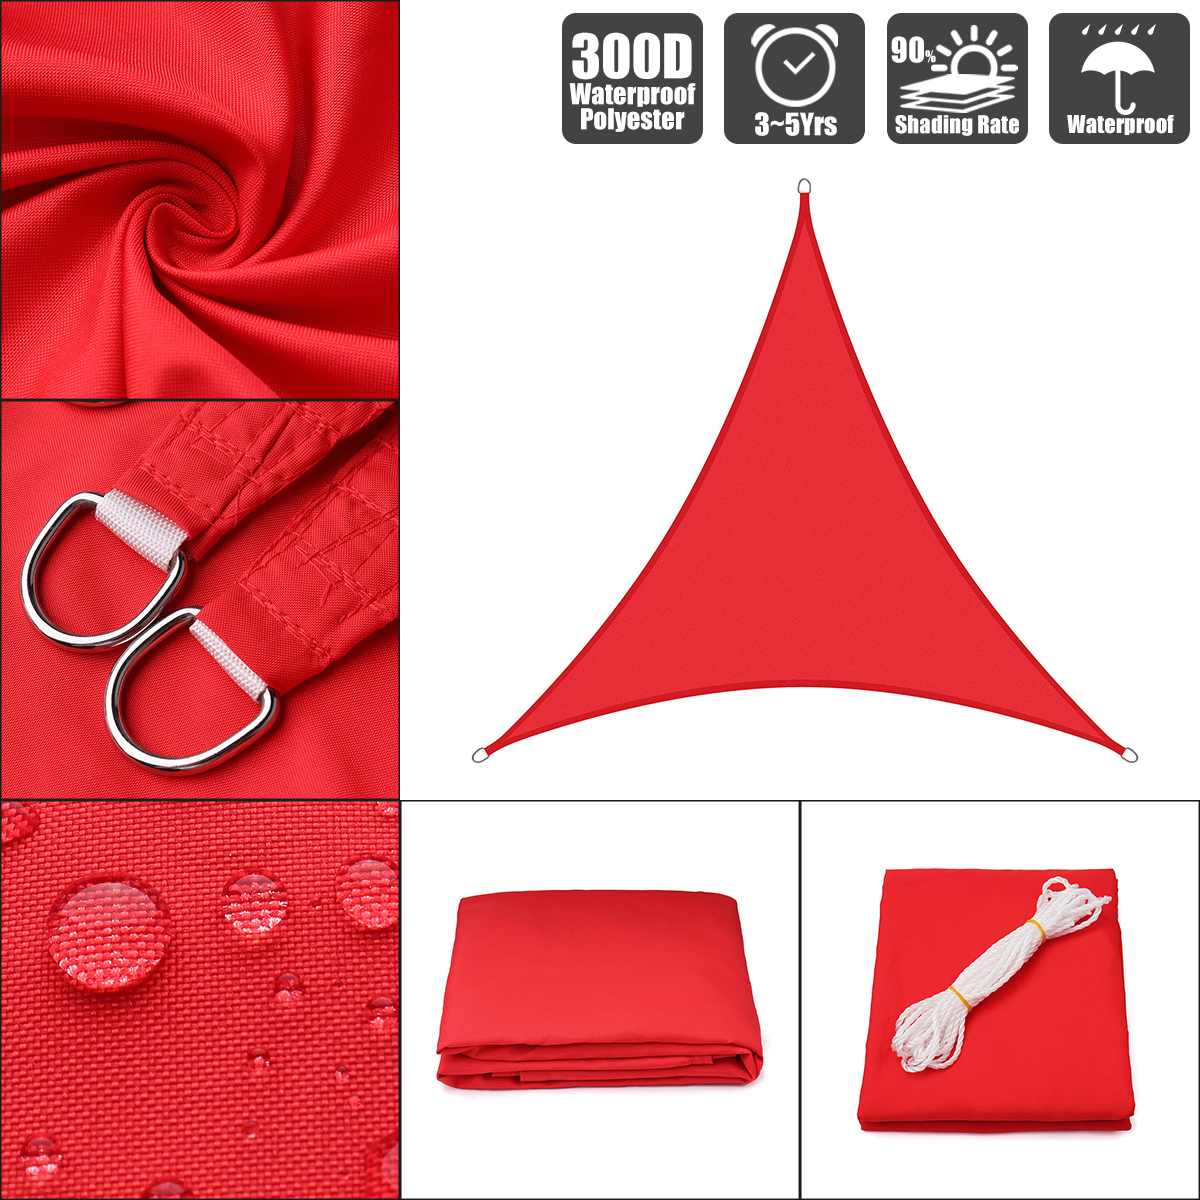 3x3x3 4x4x4 3x3x4.3 Bright red 300D polyester oxford equilateral right triangle visor sail pool cover sunscreen tent waterproof Shade Sails & Nets     - title=